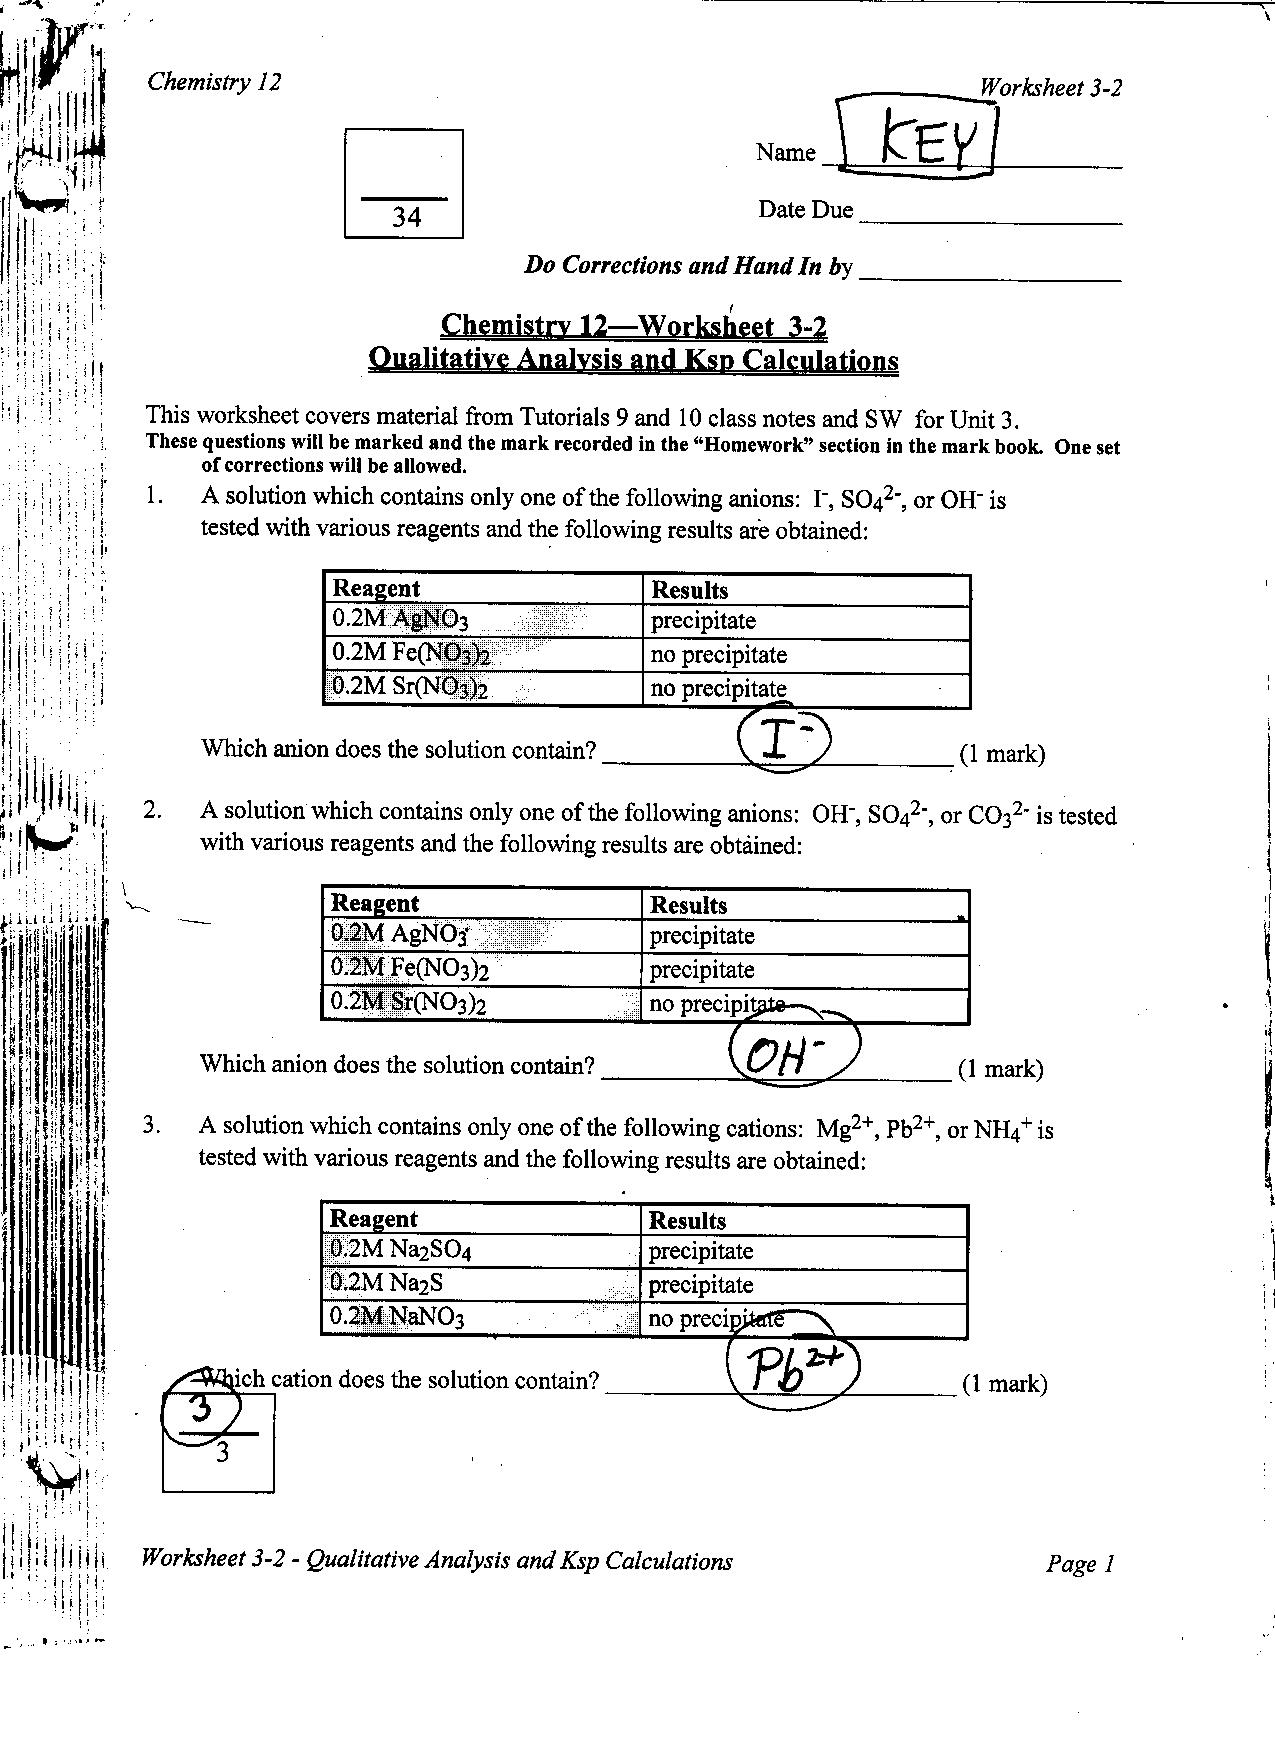 worksheet Calculating Ph Worksheet assignment3 2 keyp1 jpg p1